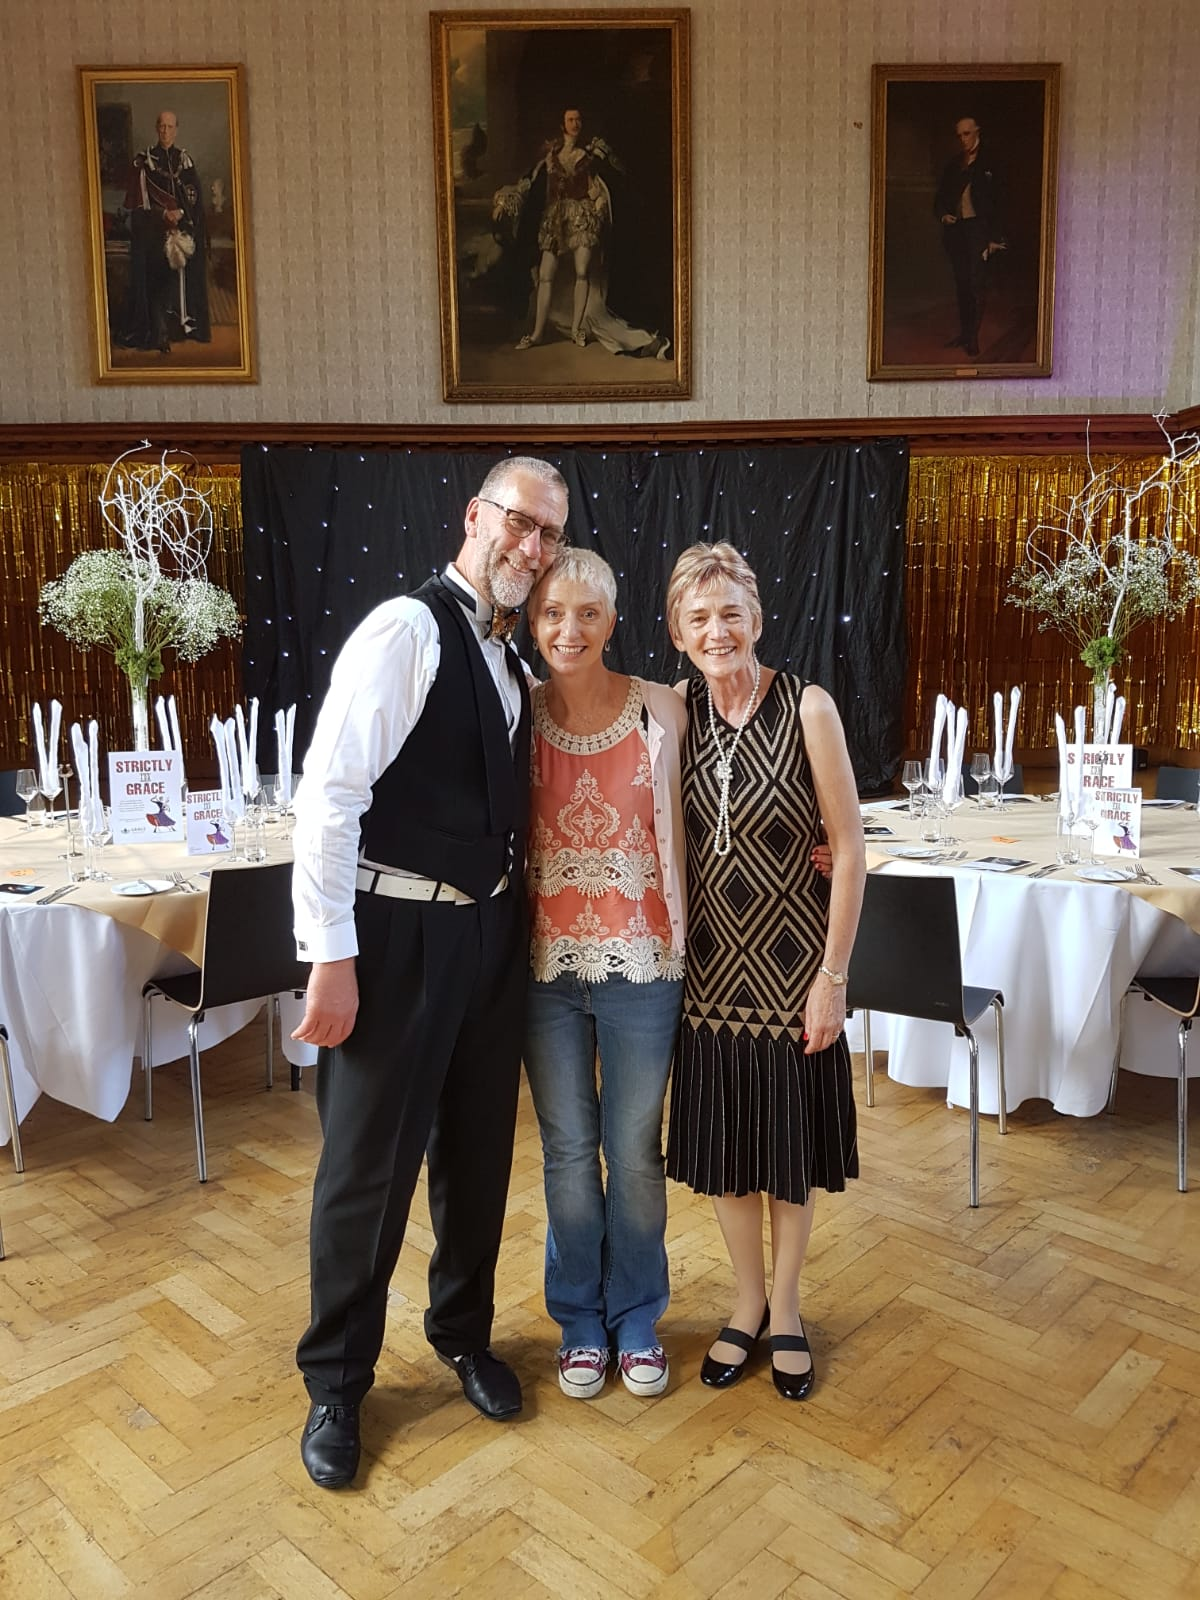 Pandy with the runners up for Strictly for GRACE last year